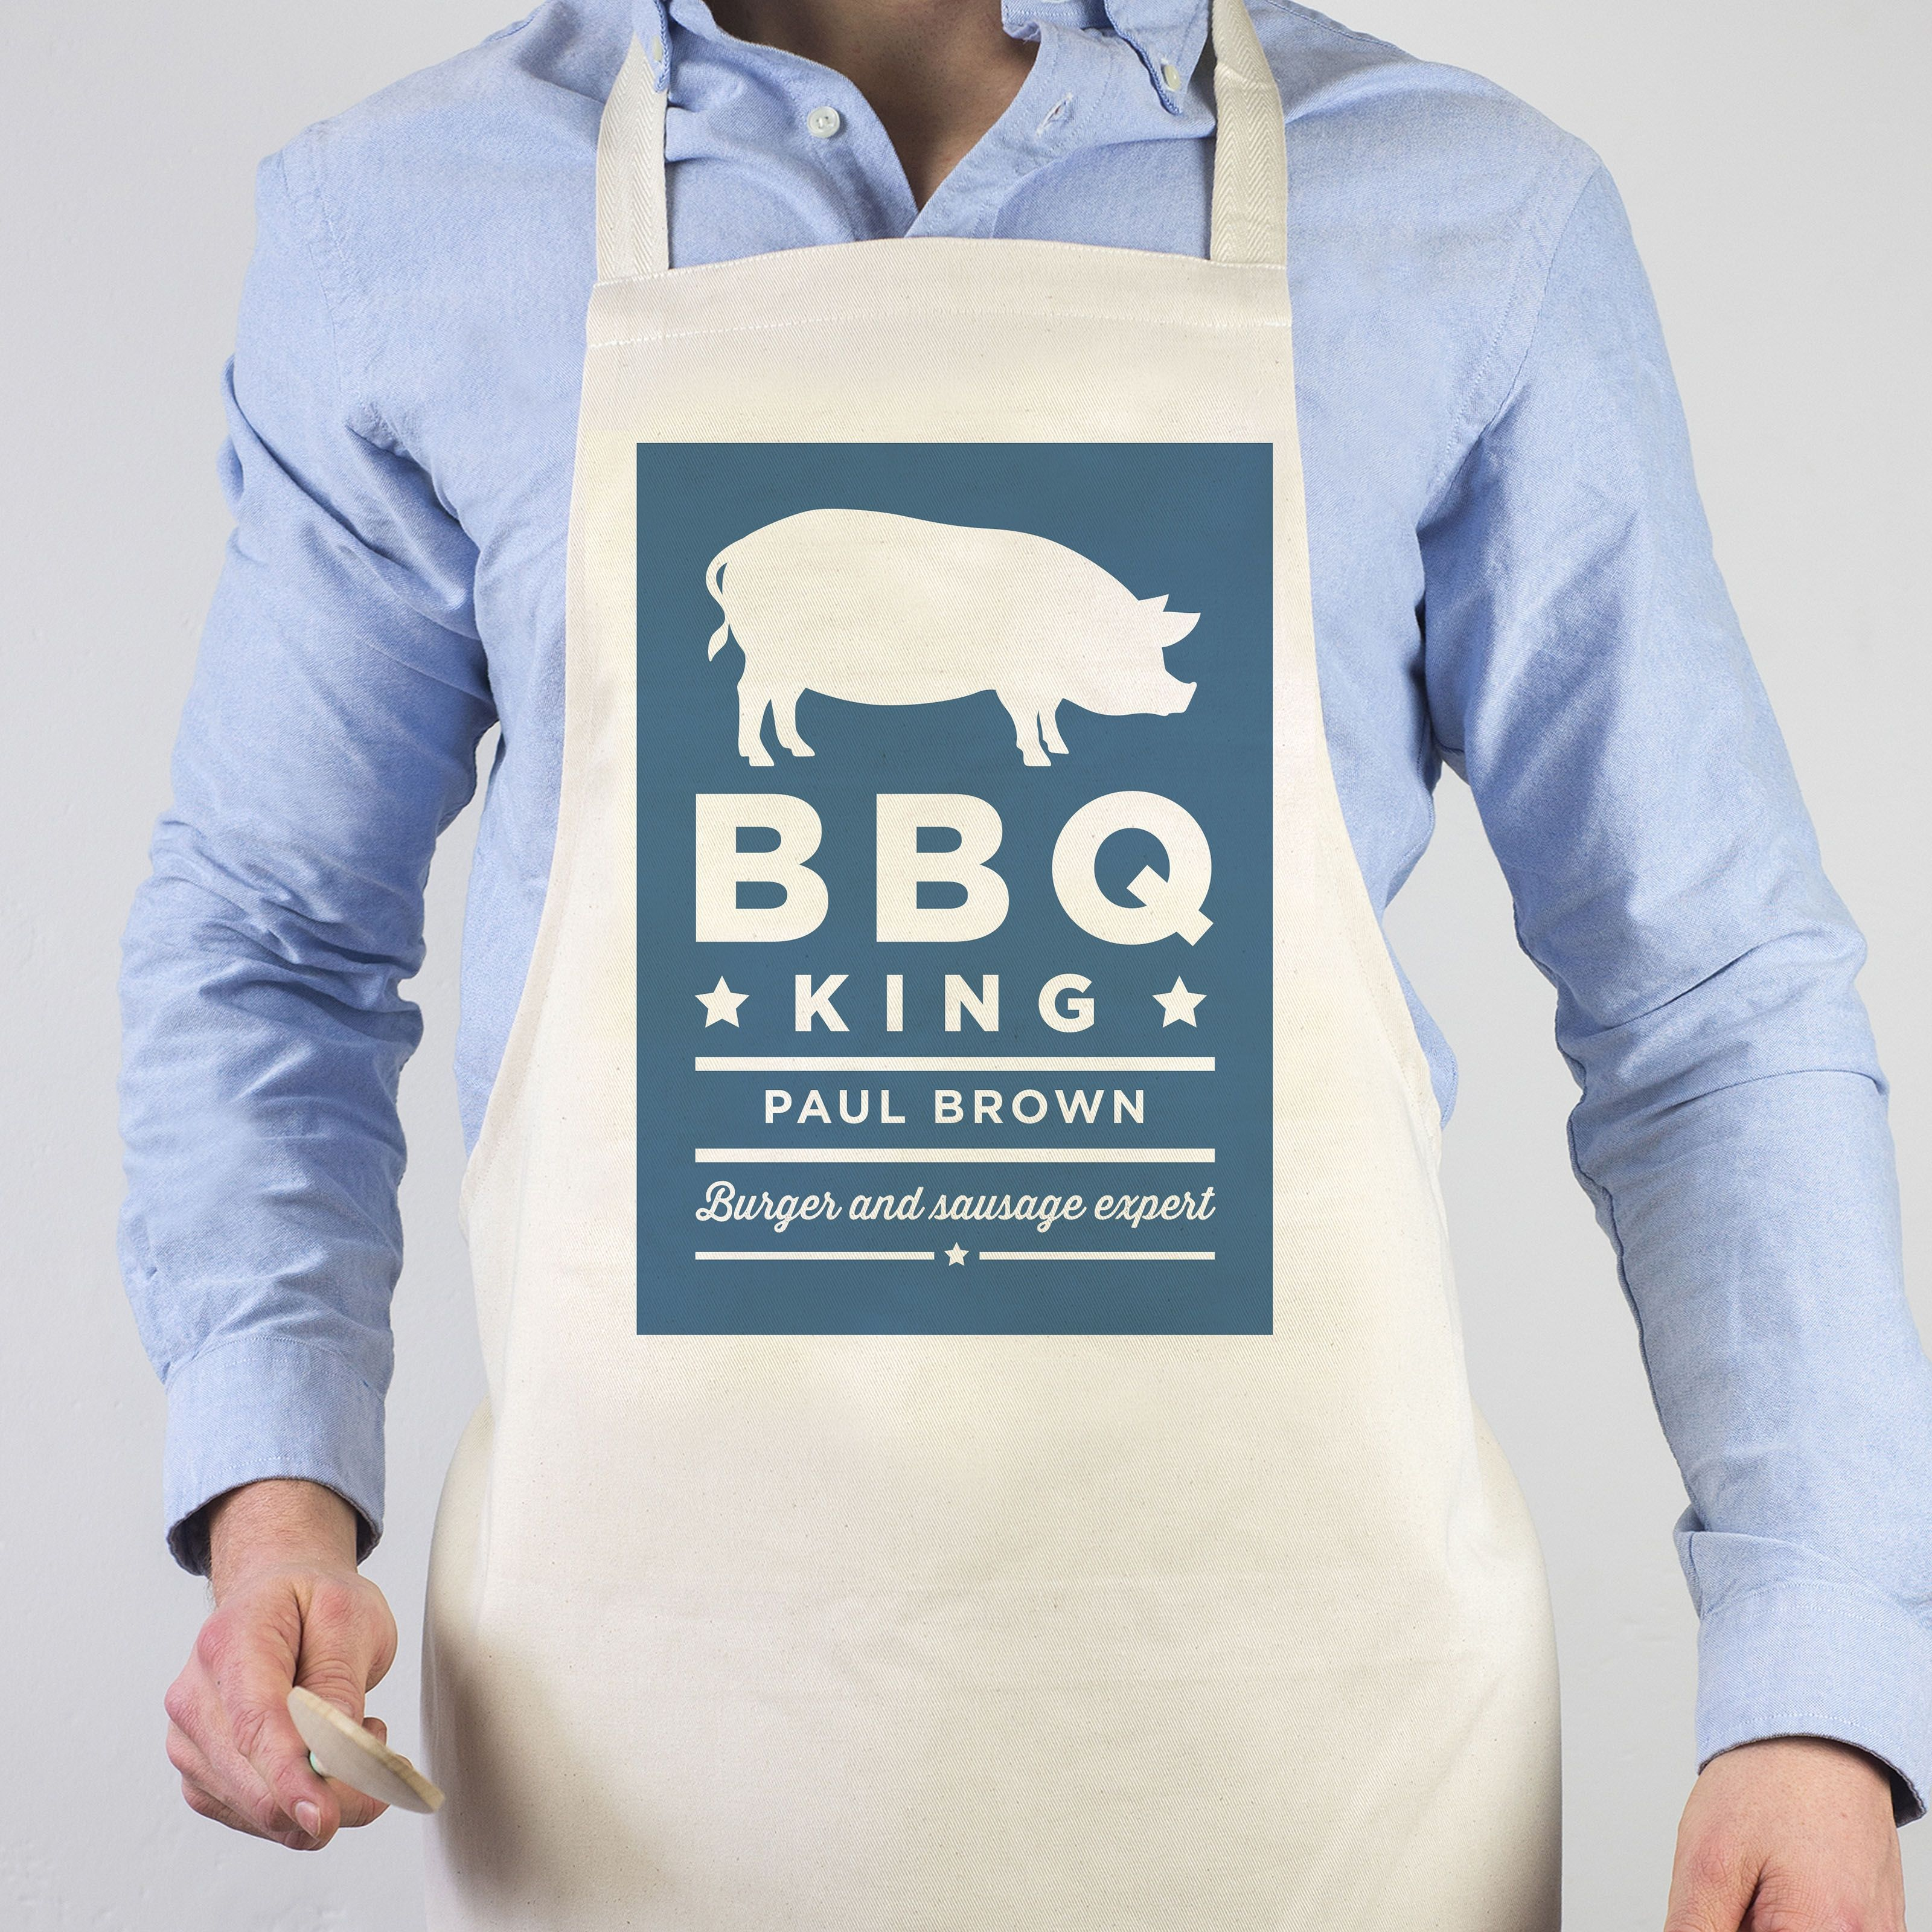 King Aprons Of The Grill Apron, BBQ - Funny For Men Dad